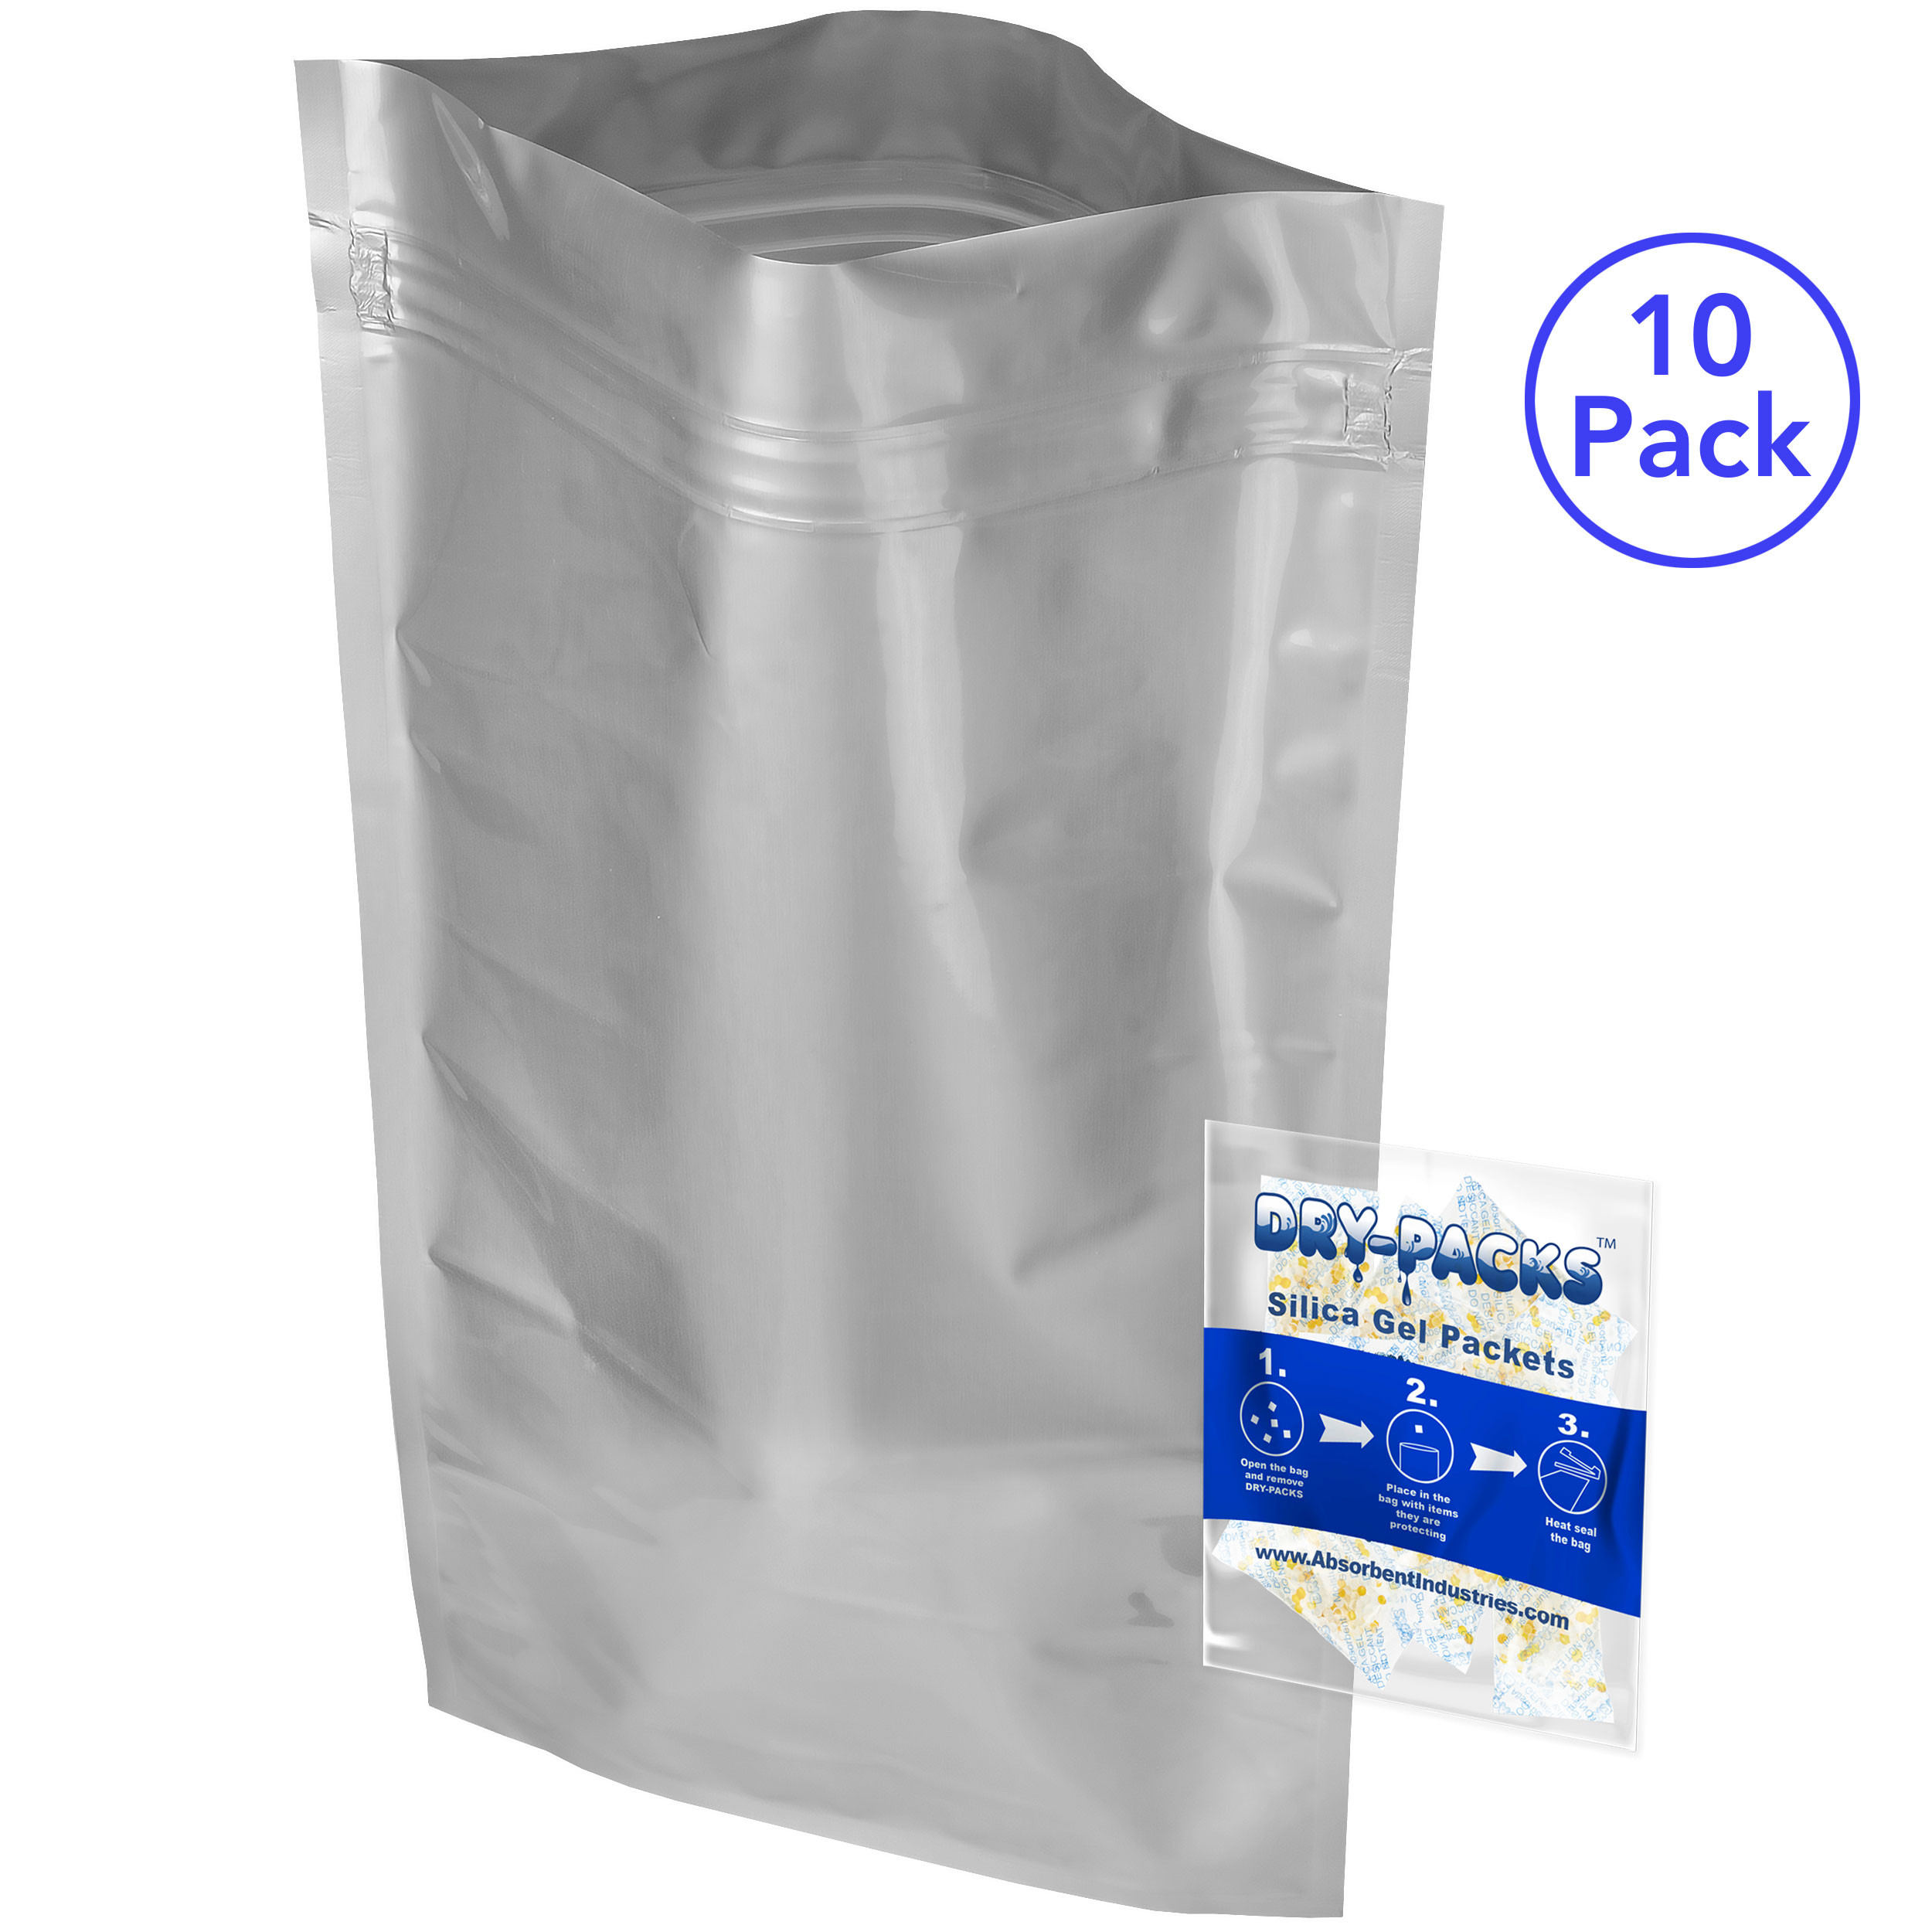 "Dry-Packs DZ20x30-10GR.INDICATING-10PK 20x30"" Aluminized Moisture Barrier & Static Shielding Zipper Bags with 10 Gram Silica Gel Packets, Set of 10, One Size, Silver"